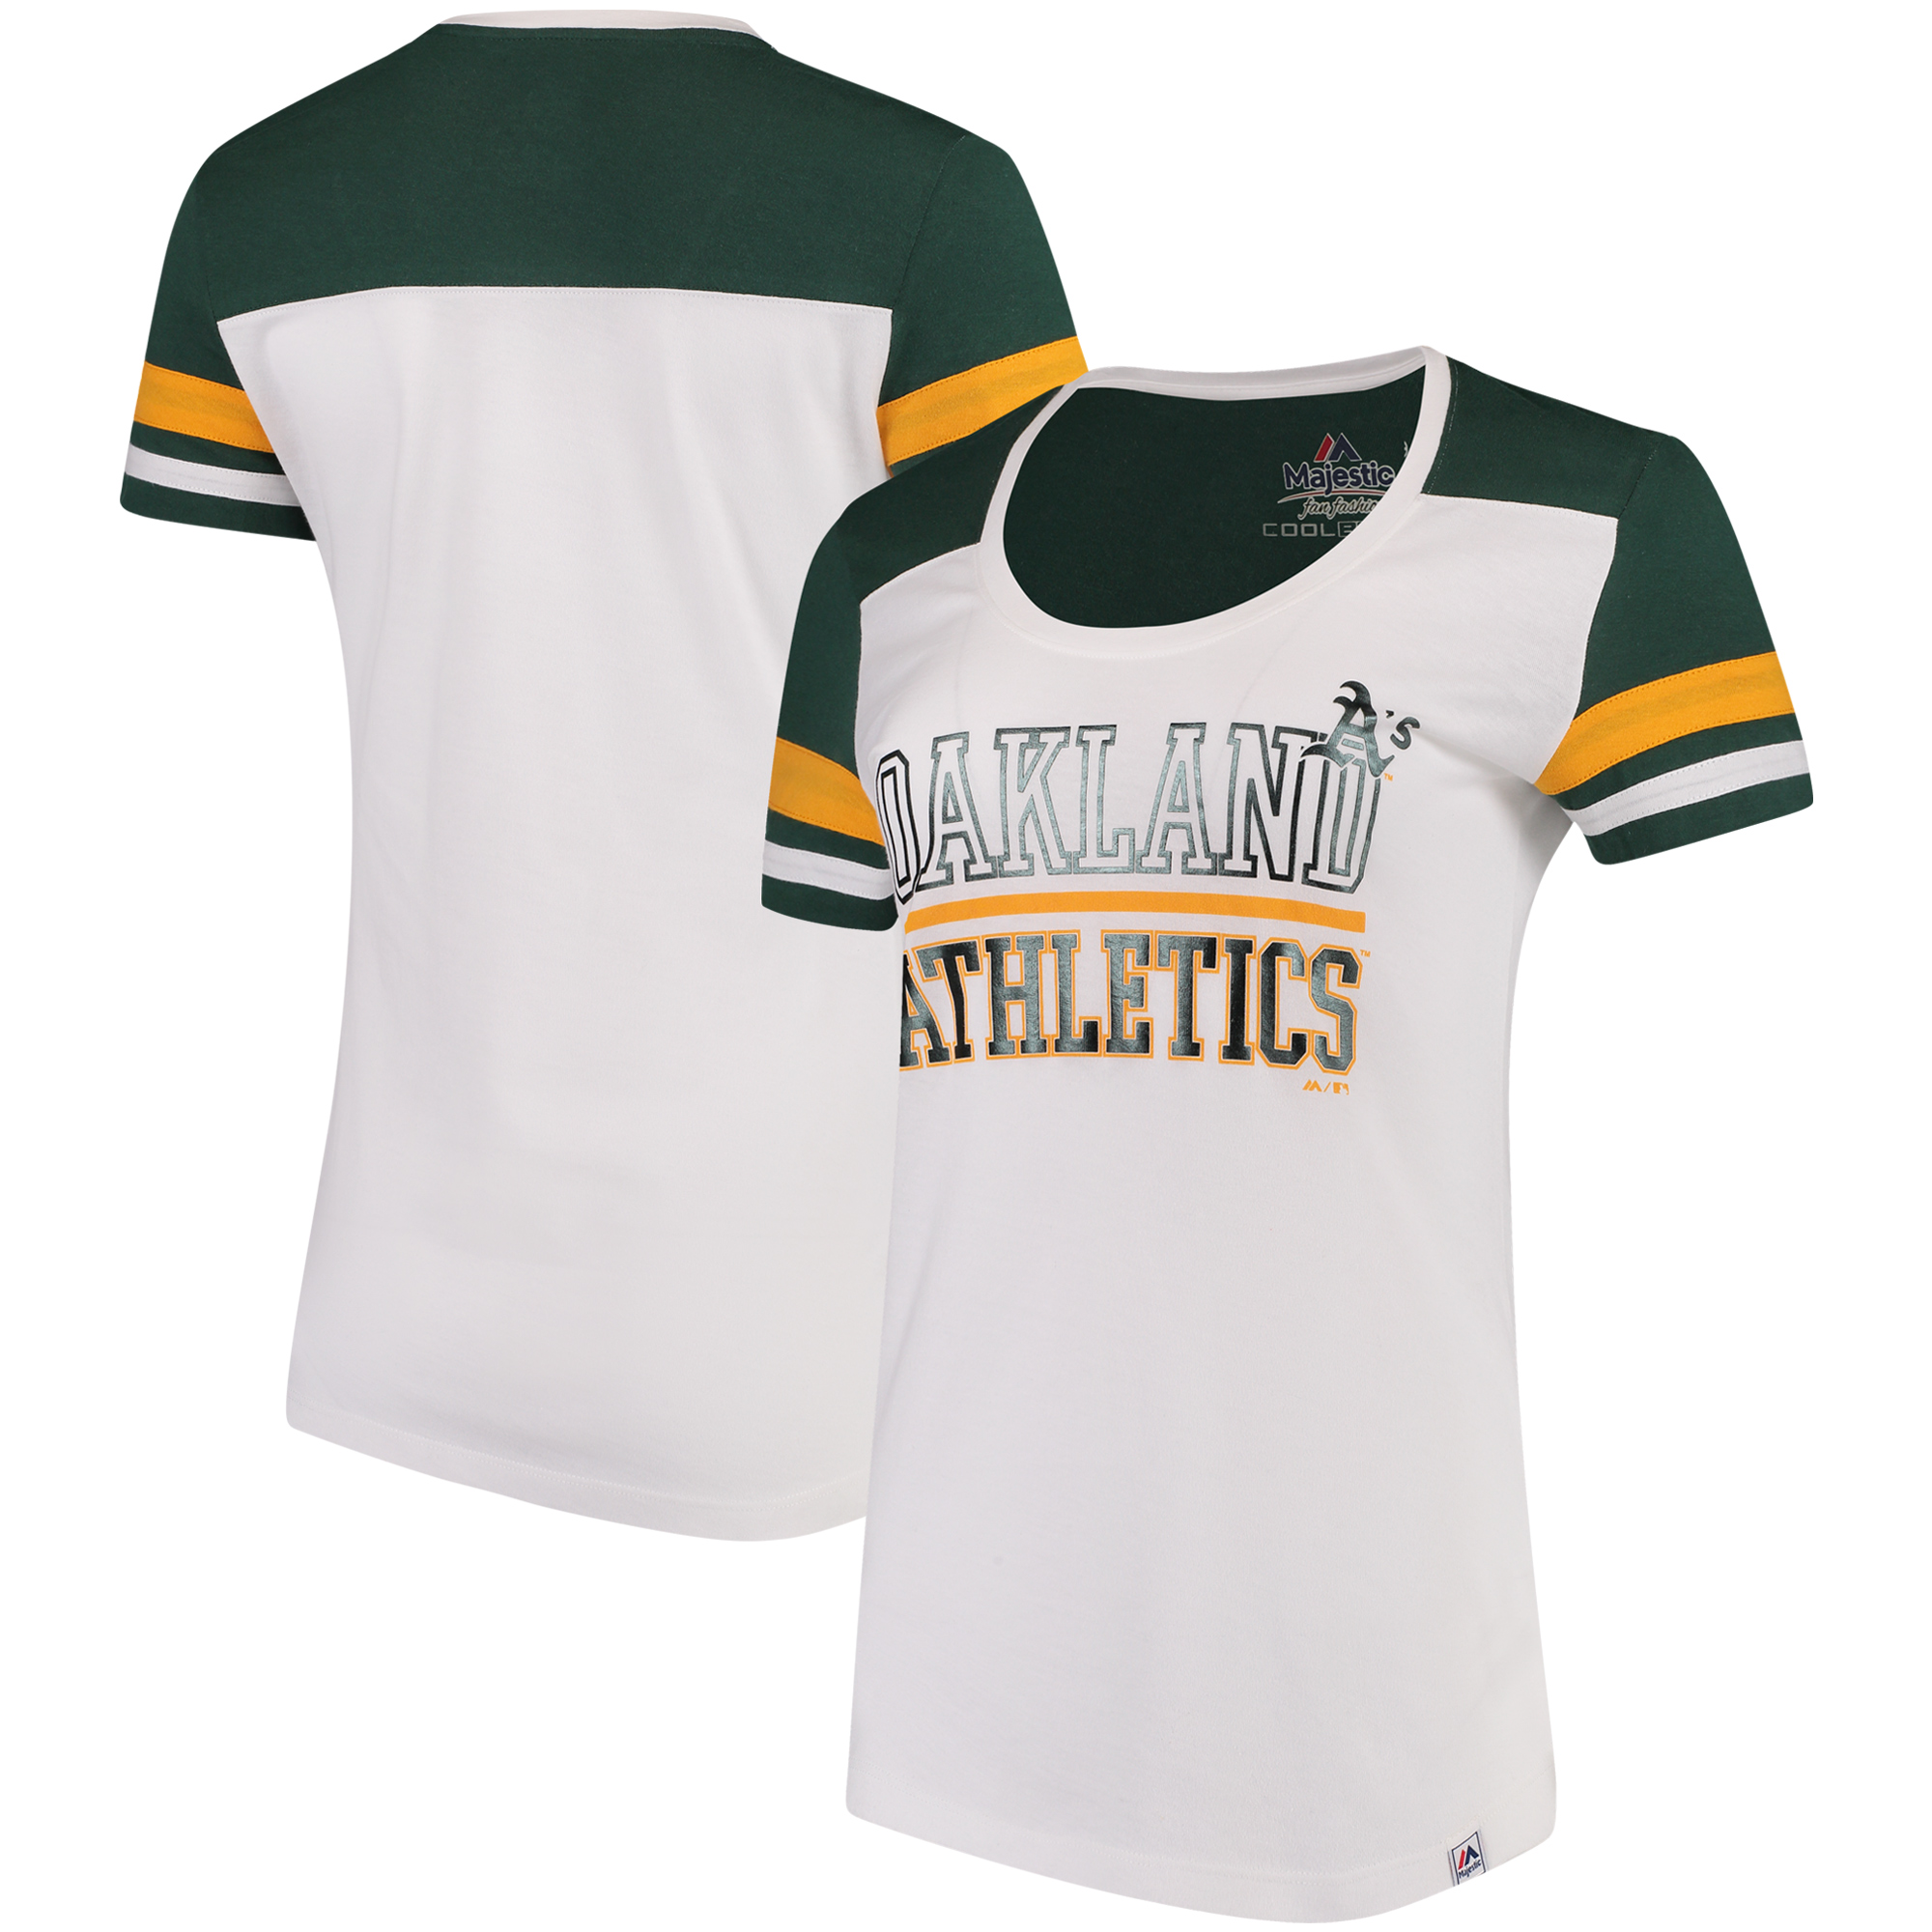 Oakland Athletics Majestic Women's Overwhelming Victory T-Shirt - White/Green